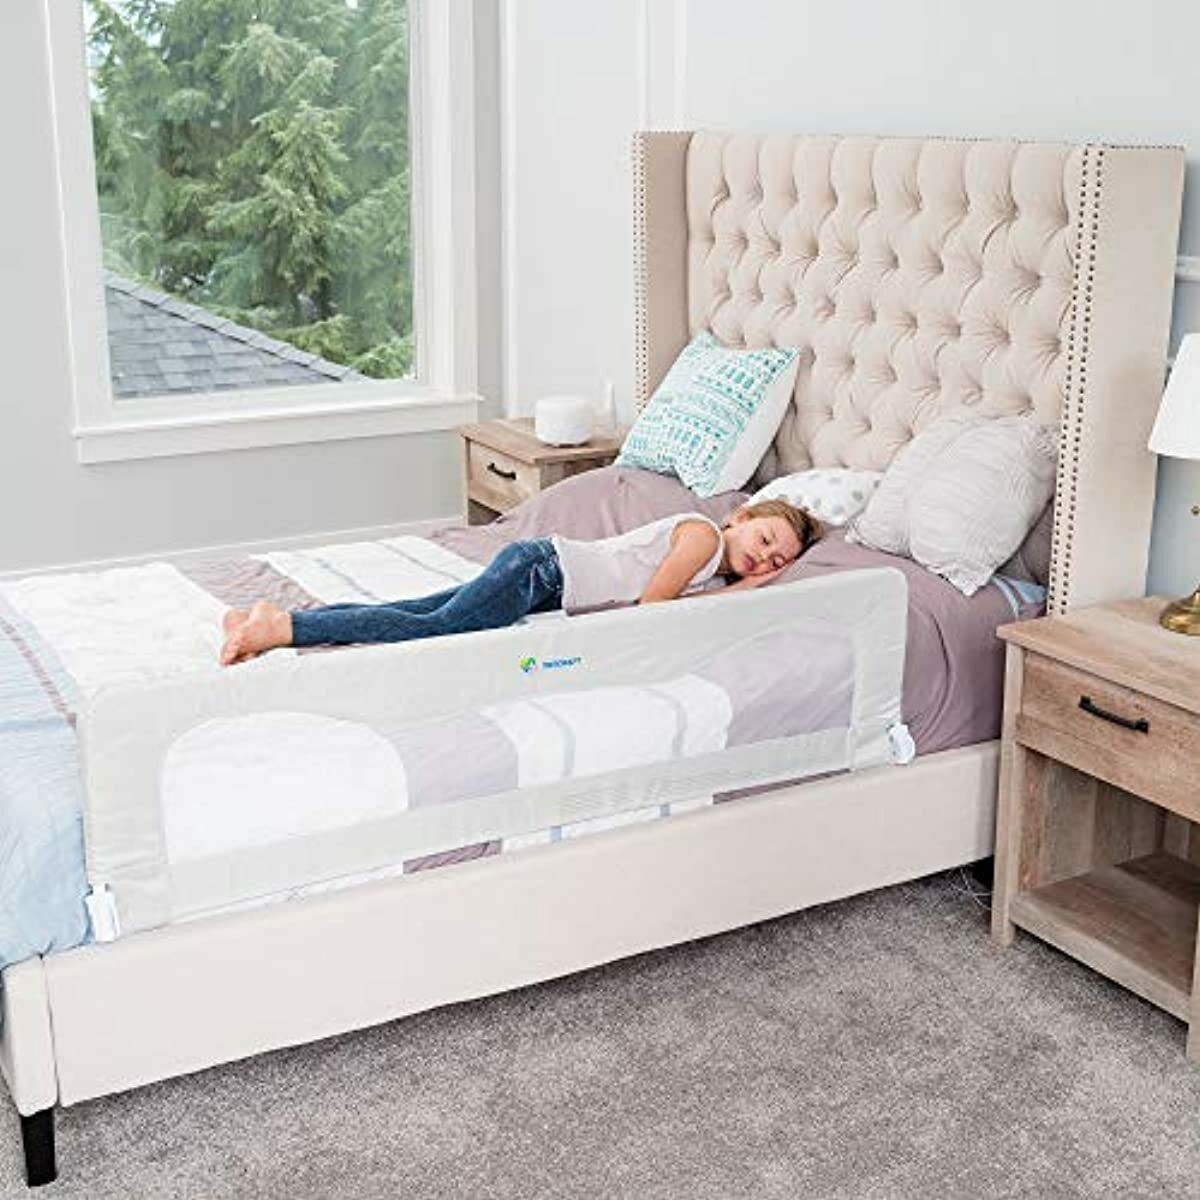 White Kids Safety Crib Bed Rail For Toddlers Extra Long For Any Size Bed - $107.26